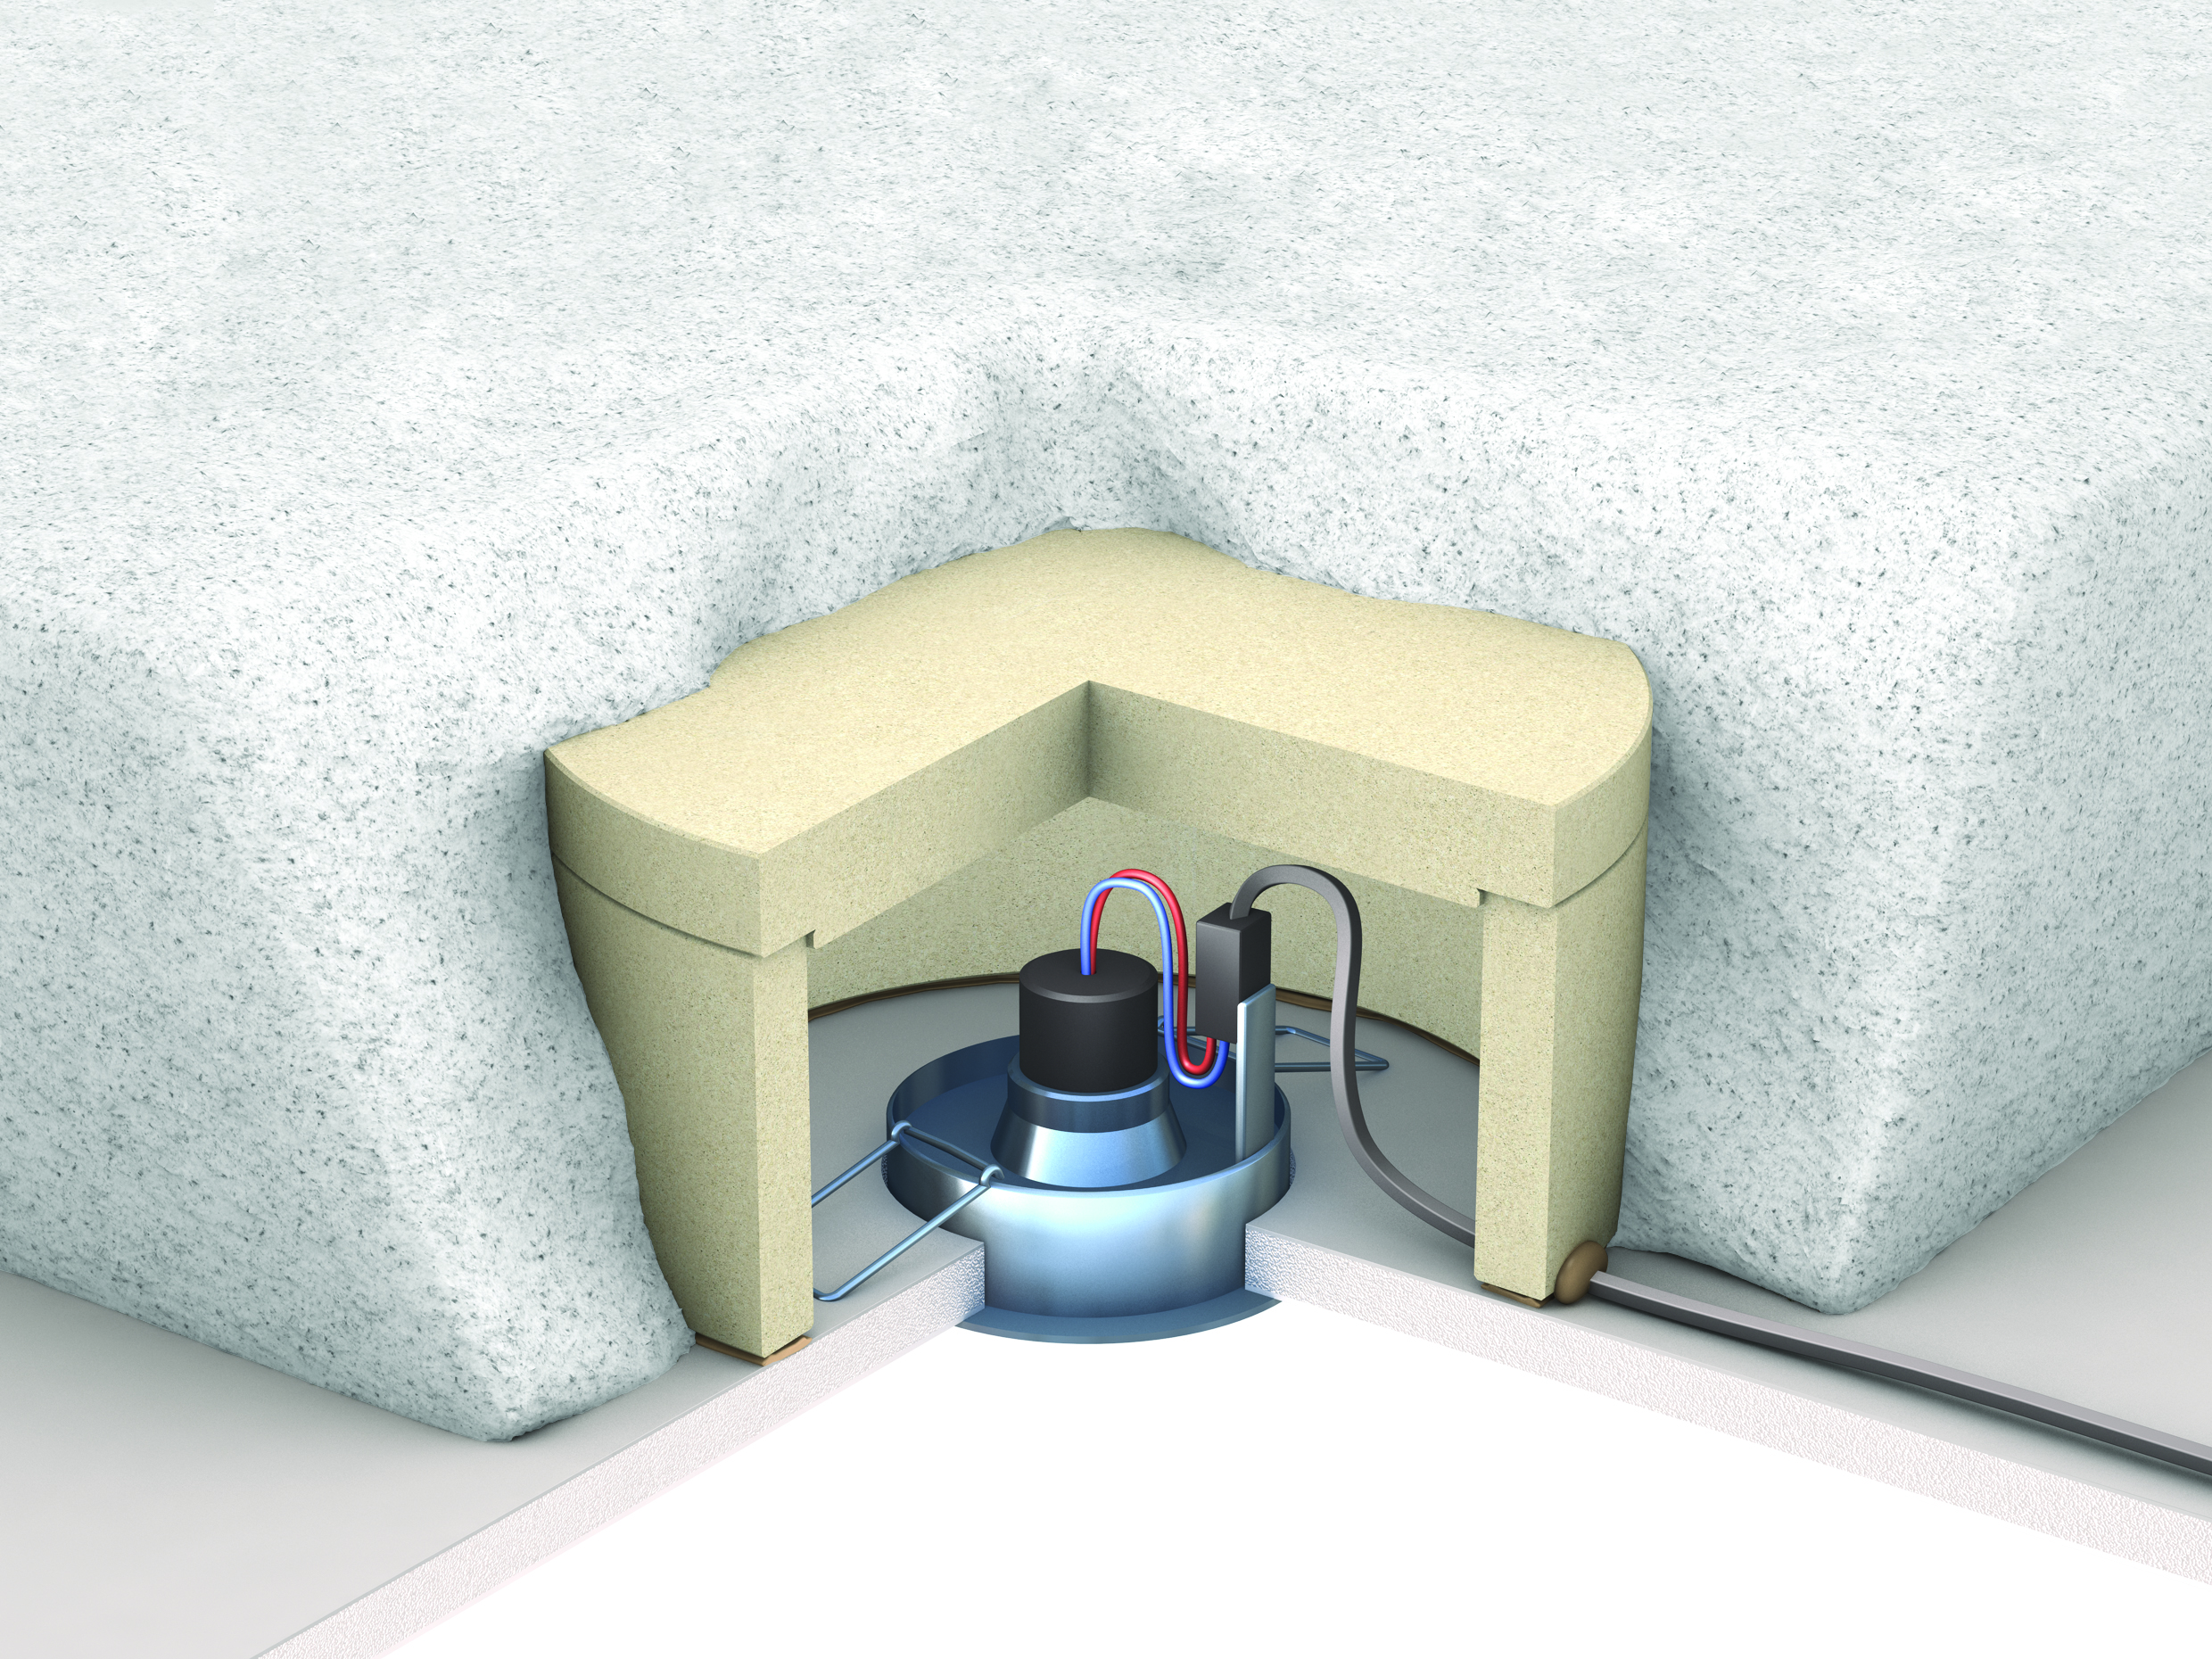 protec spot protecteur thermique batipresse. Black Bedroom Furniture Sets. Home Design Ideas